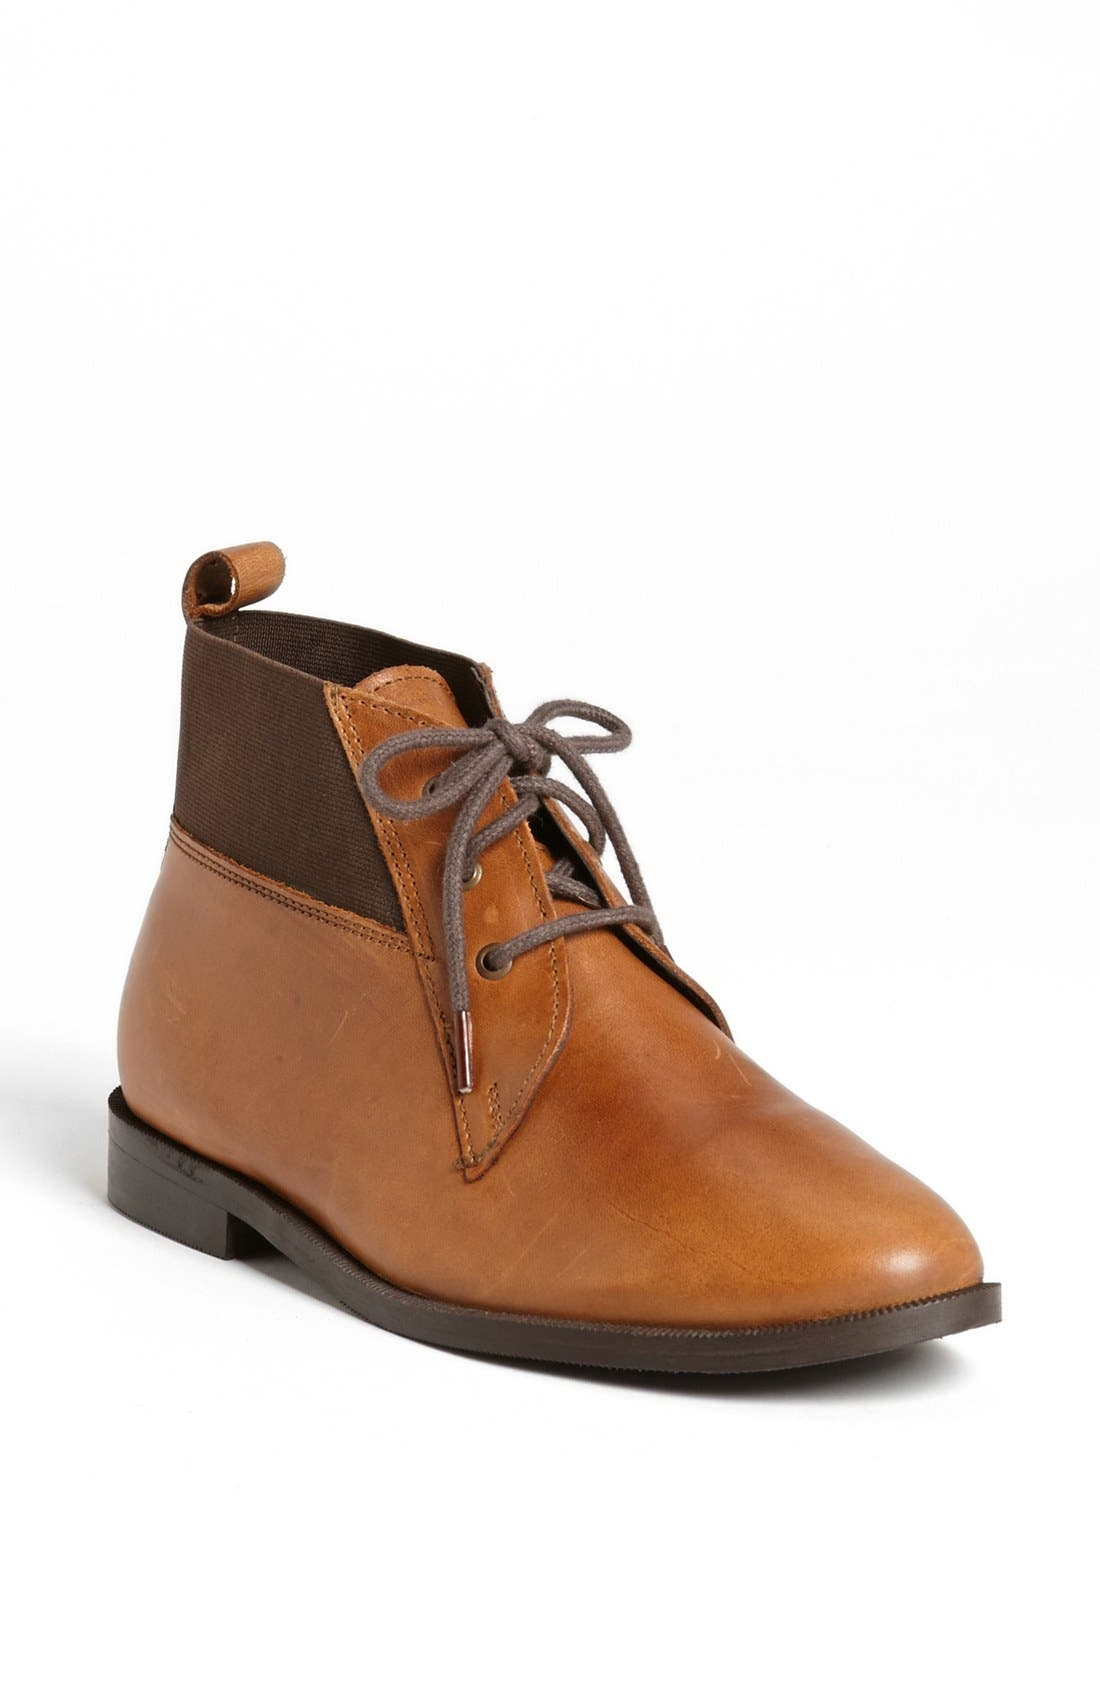 Main Image - Topshop 'Model' Ankle Boot